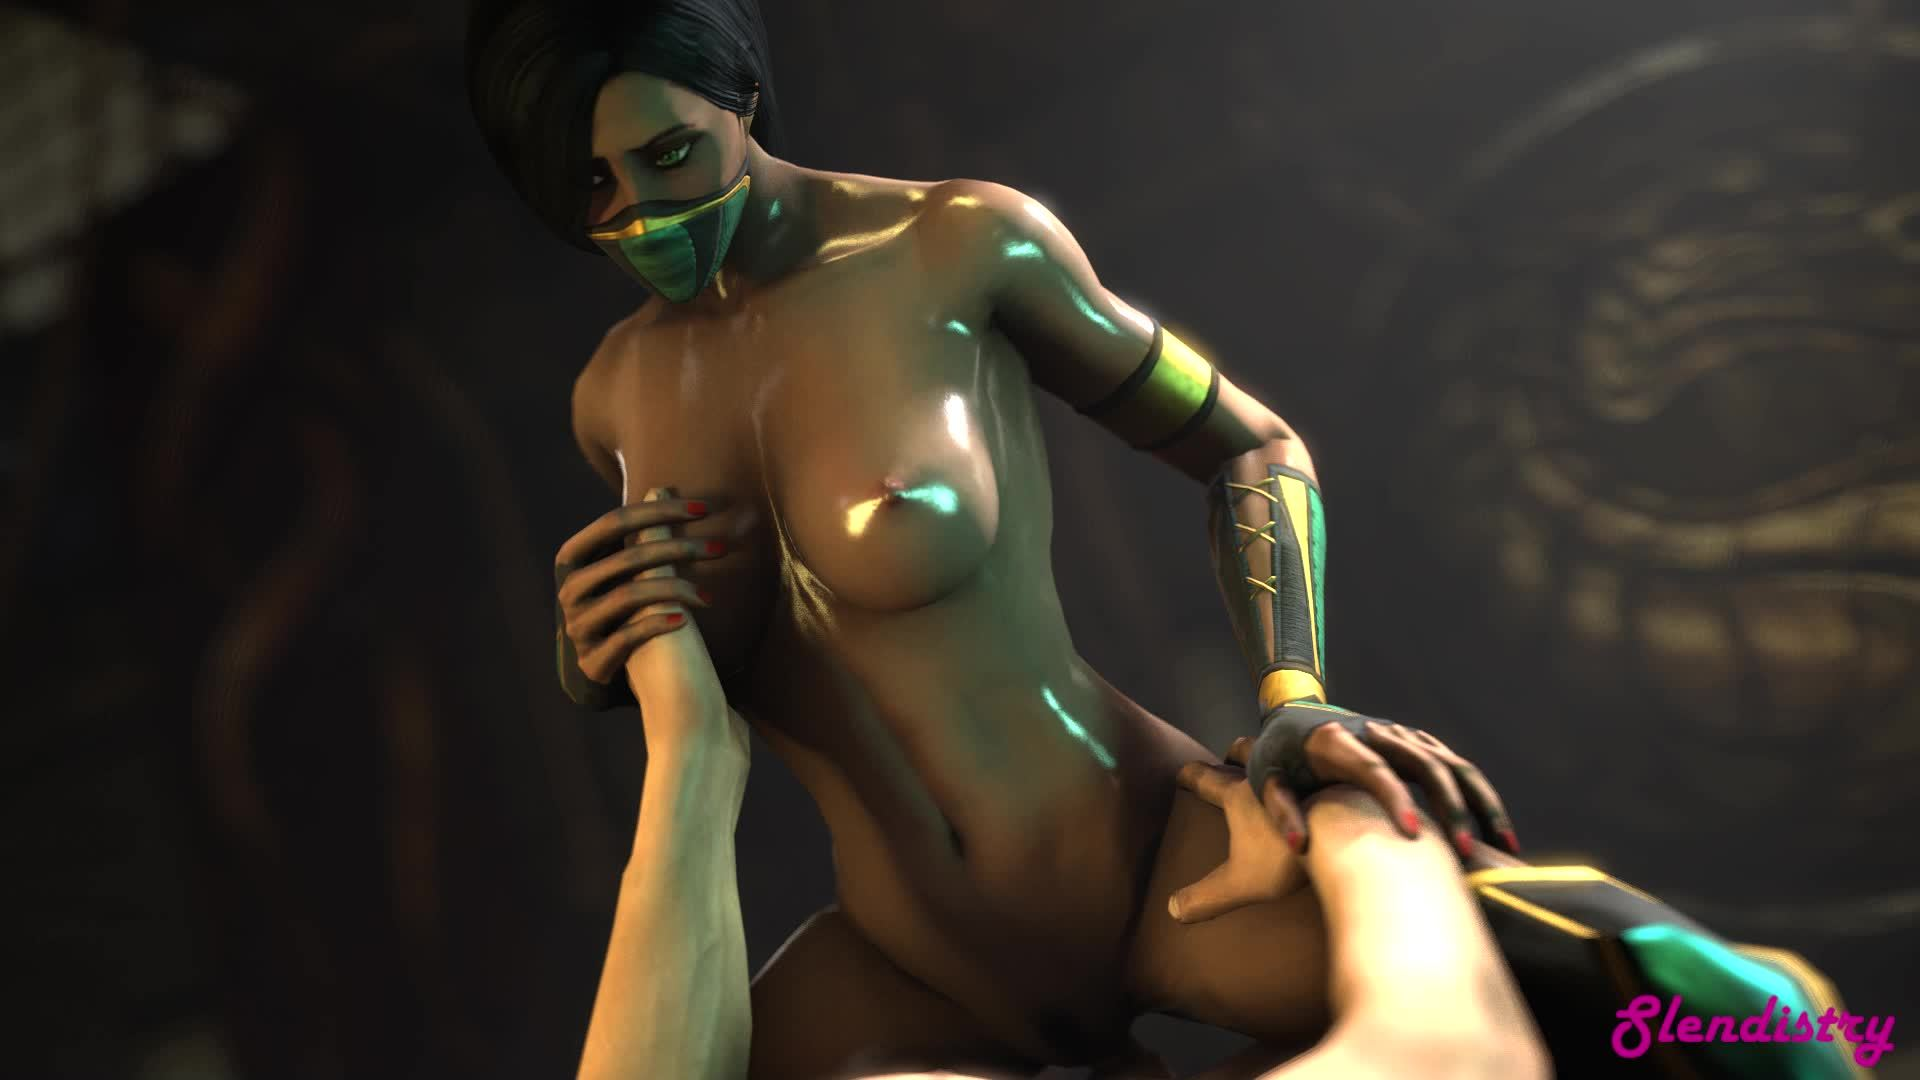 All business. Sexy mortal kombat girls naked message